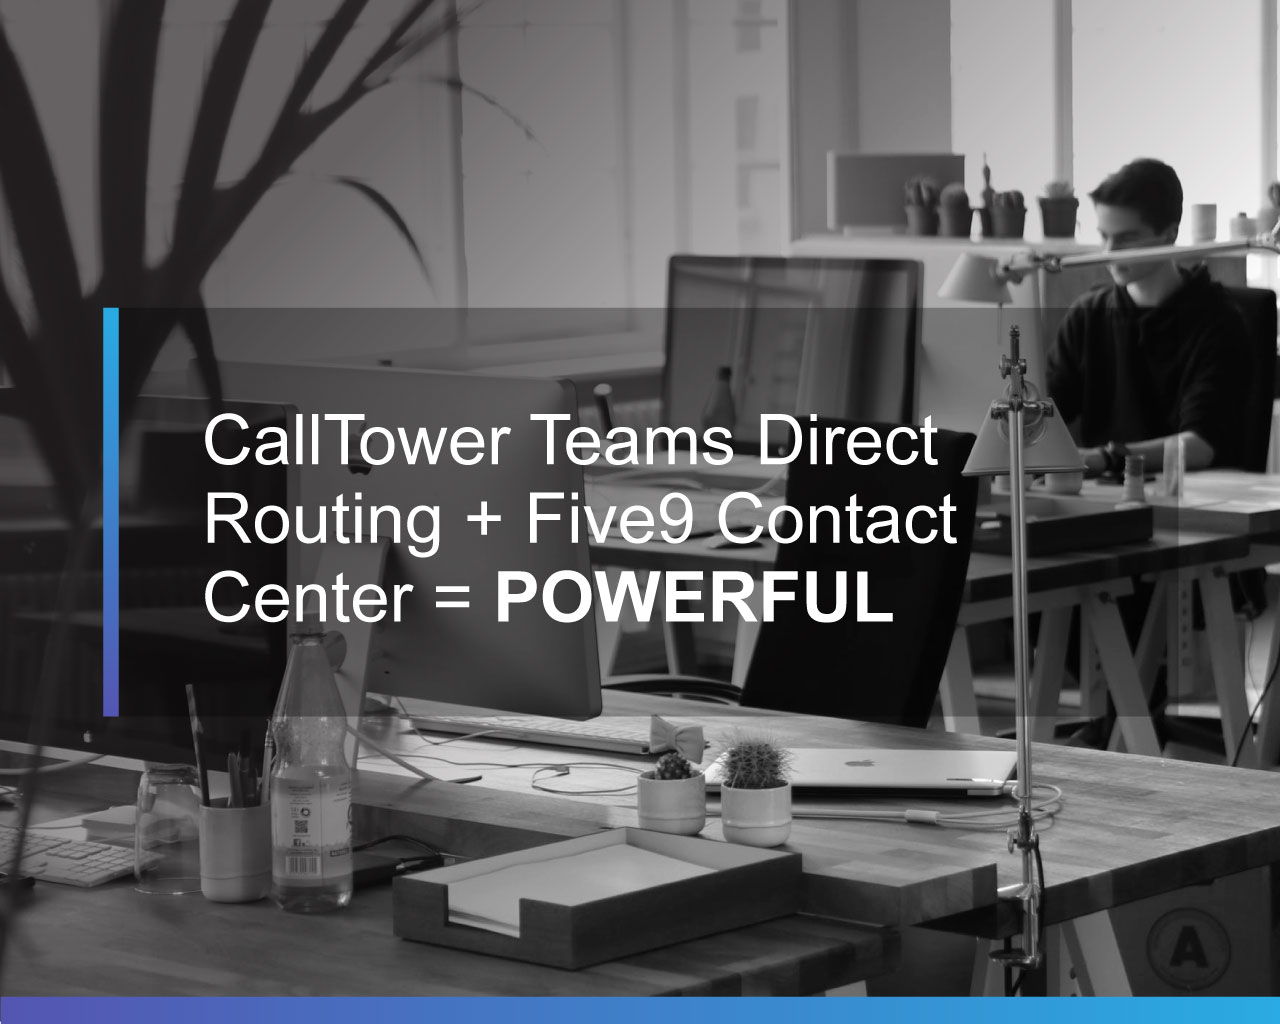 Teams Direct Routing + Contact Center